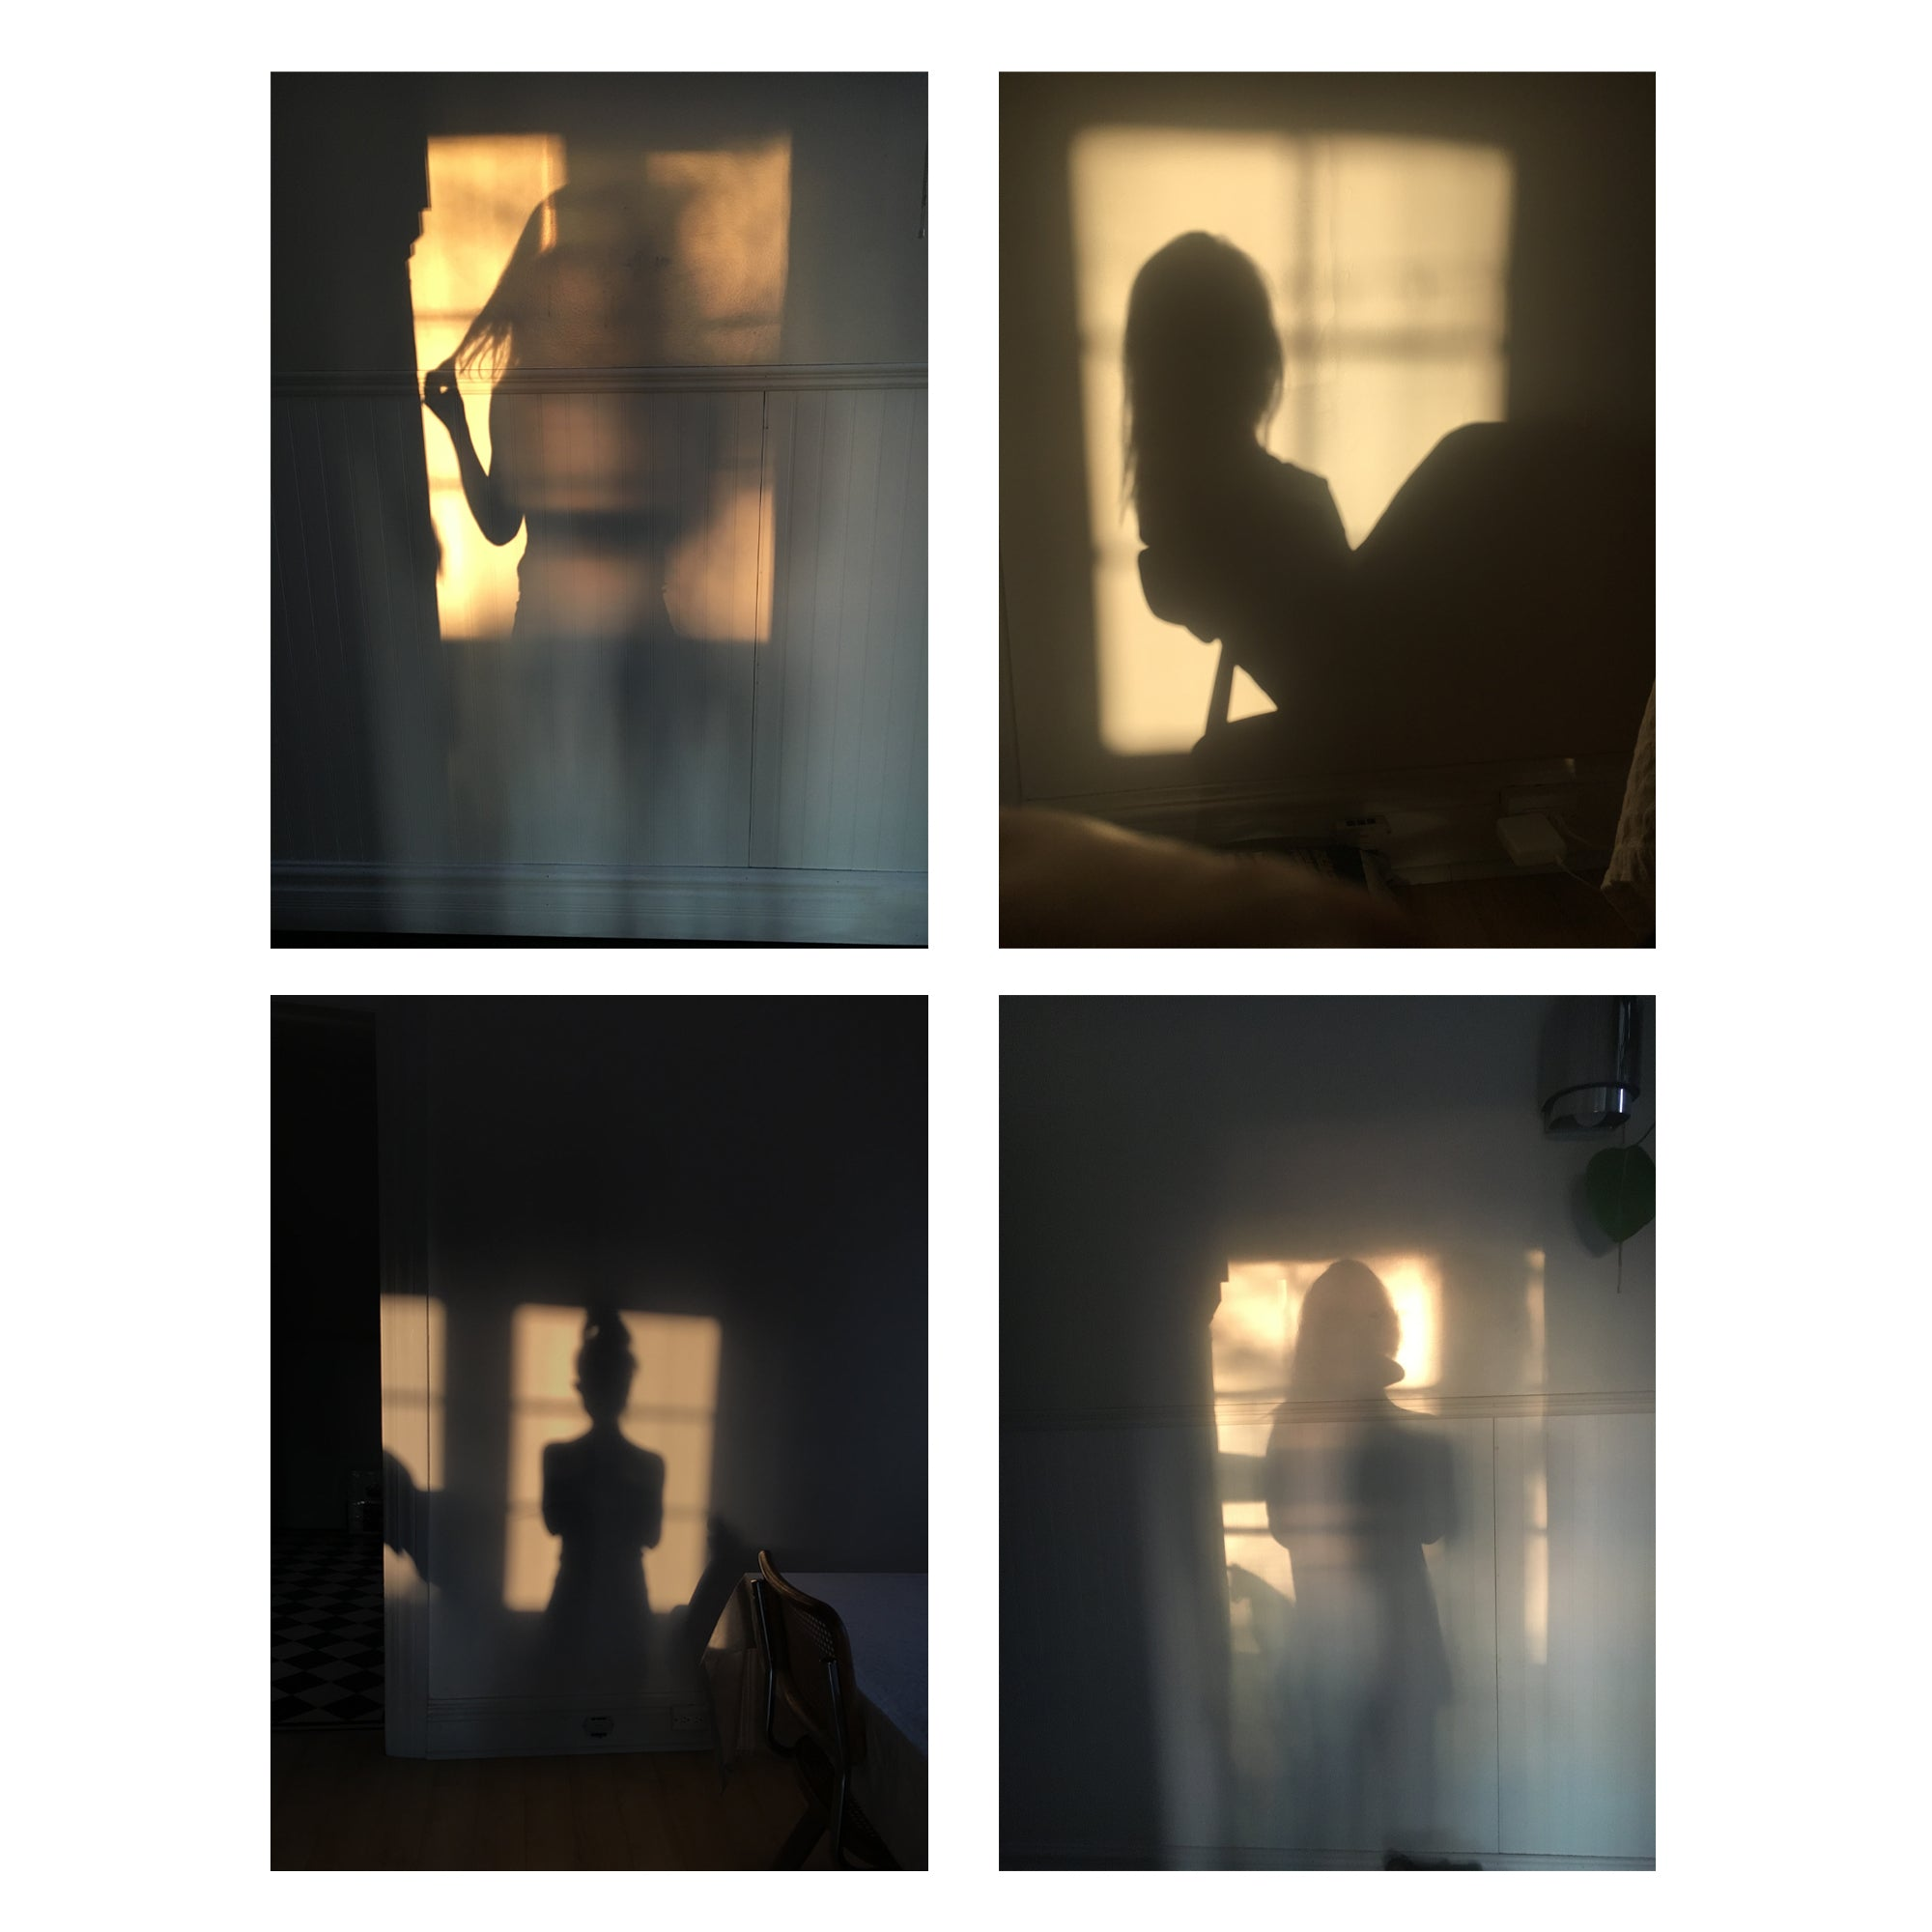 Lauren Kolyn - Various images taken at home in the evening light of my apartment. 2017-2020.